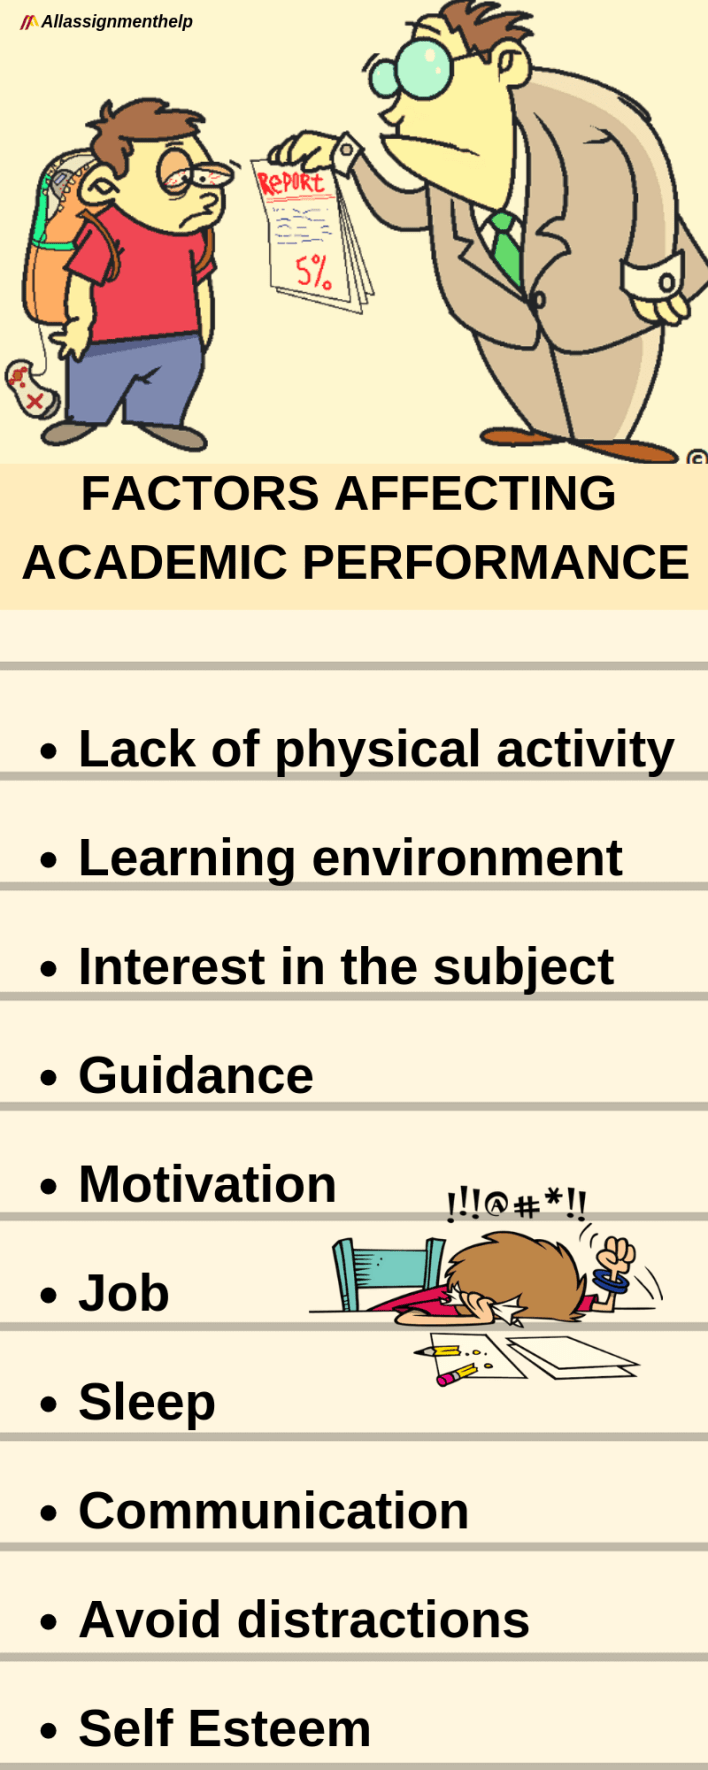 Factors affecting academic performance